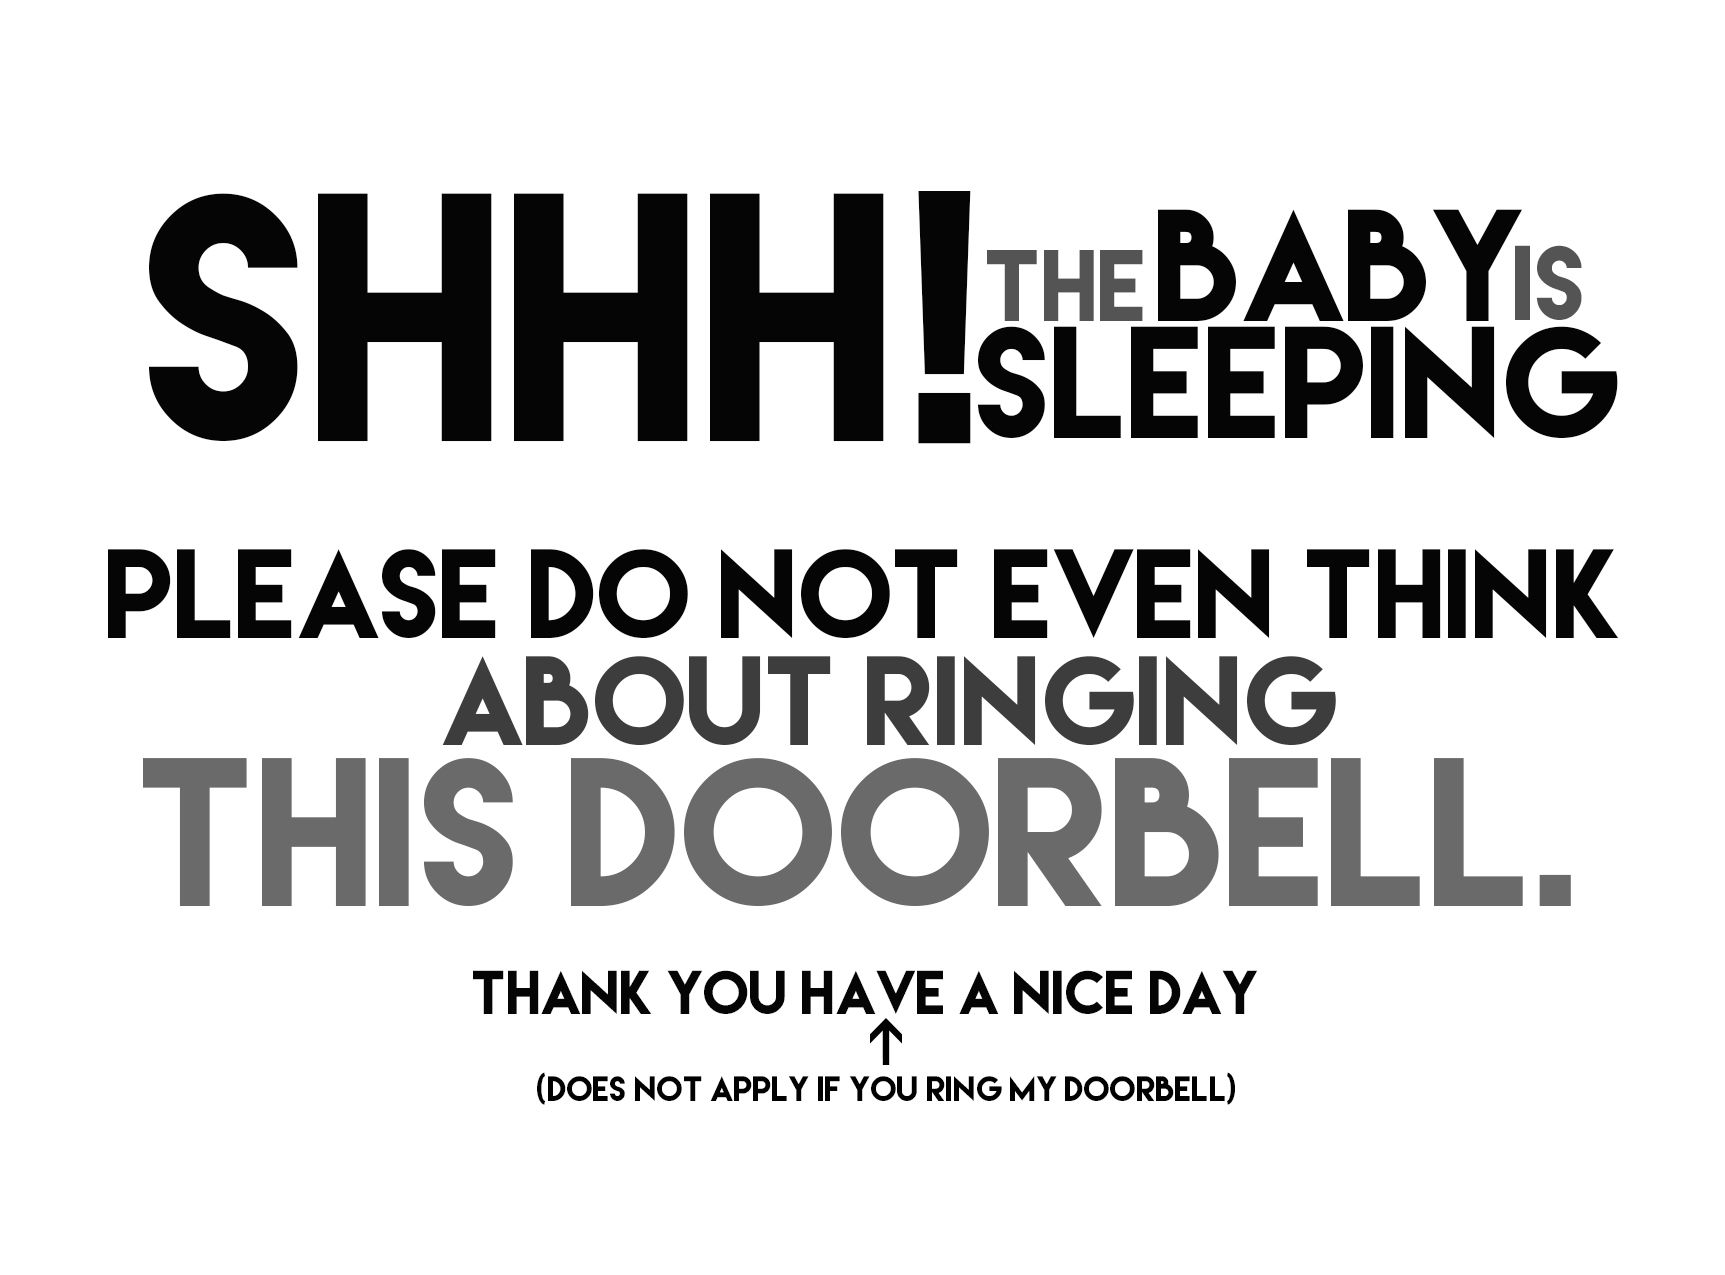 image relating to Printable Baby Sleeping Sign Front Door titled Little one Sleeping Indicator, Do Not Ring Doorbell Magnet, Dont Ring